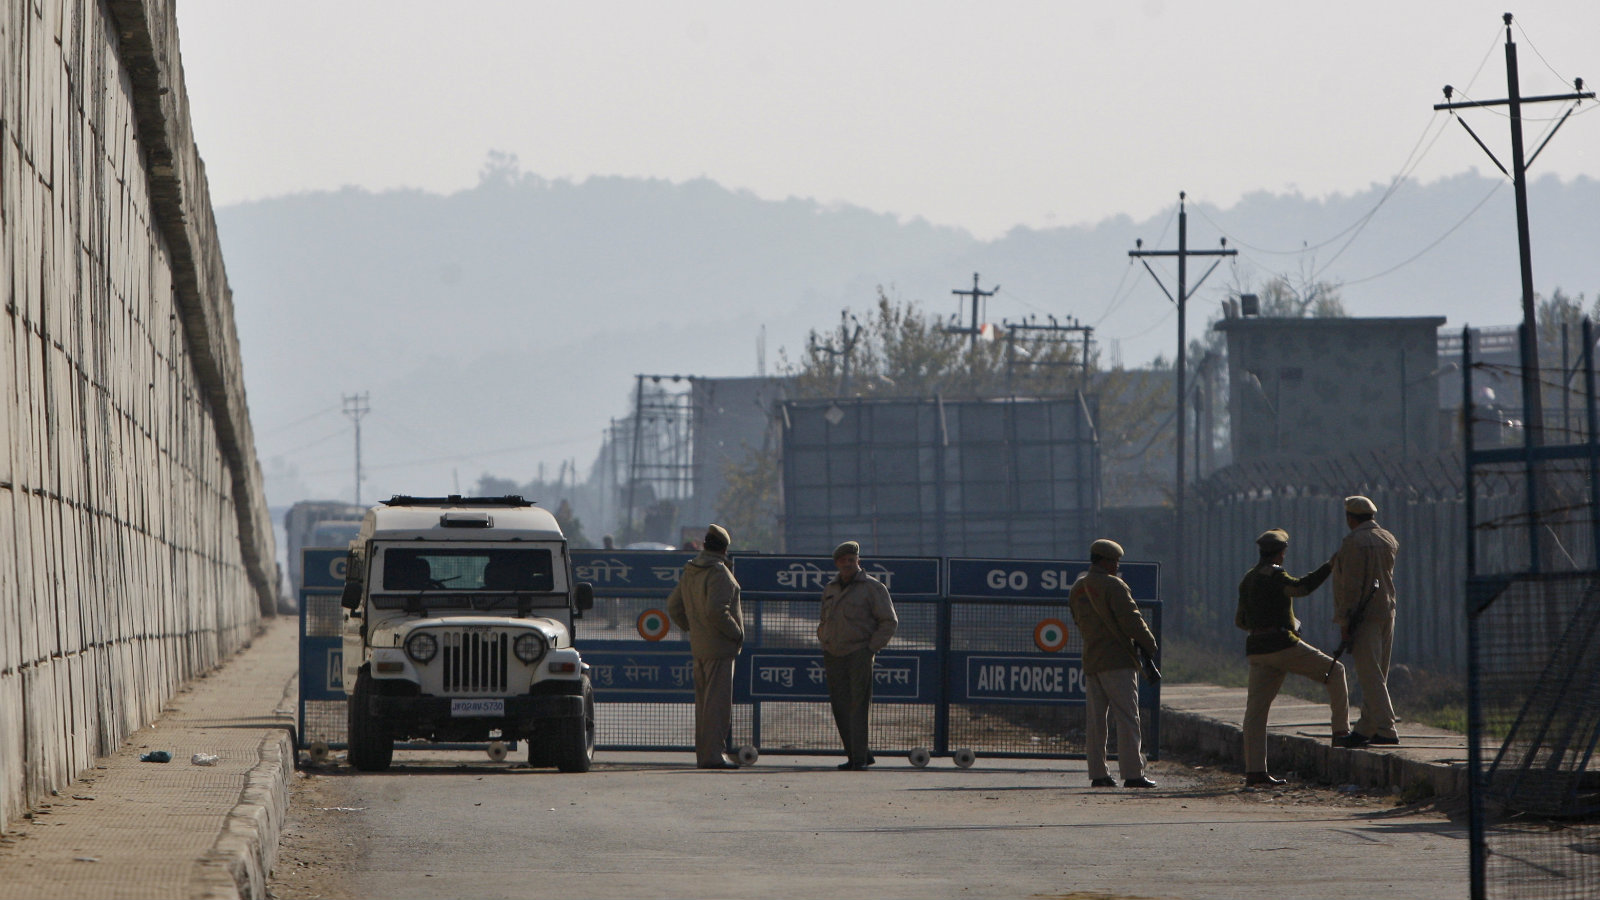 Indian security forces set up a road barrier outside an Indian air force base in Pathankot, 430 kilometers (267 miles) north of New Delhi, India, Saturday, Jan. 2, 2016. Gunmen attacked the air force base near the border with Pakistan on Saturday morning and exchanged fire with security forces, officials said.